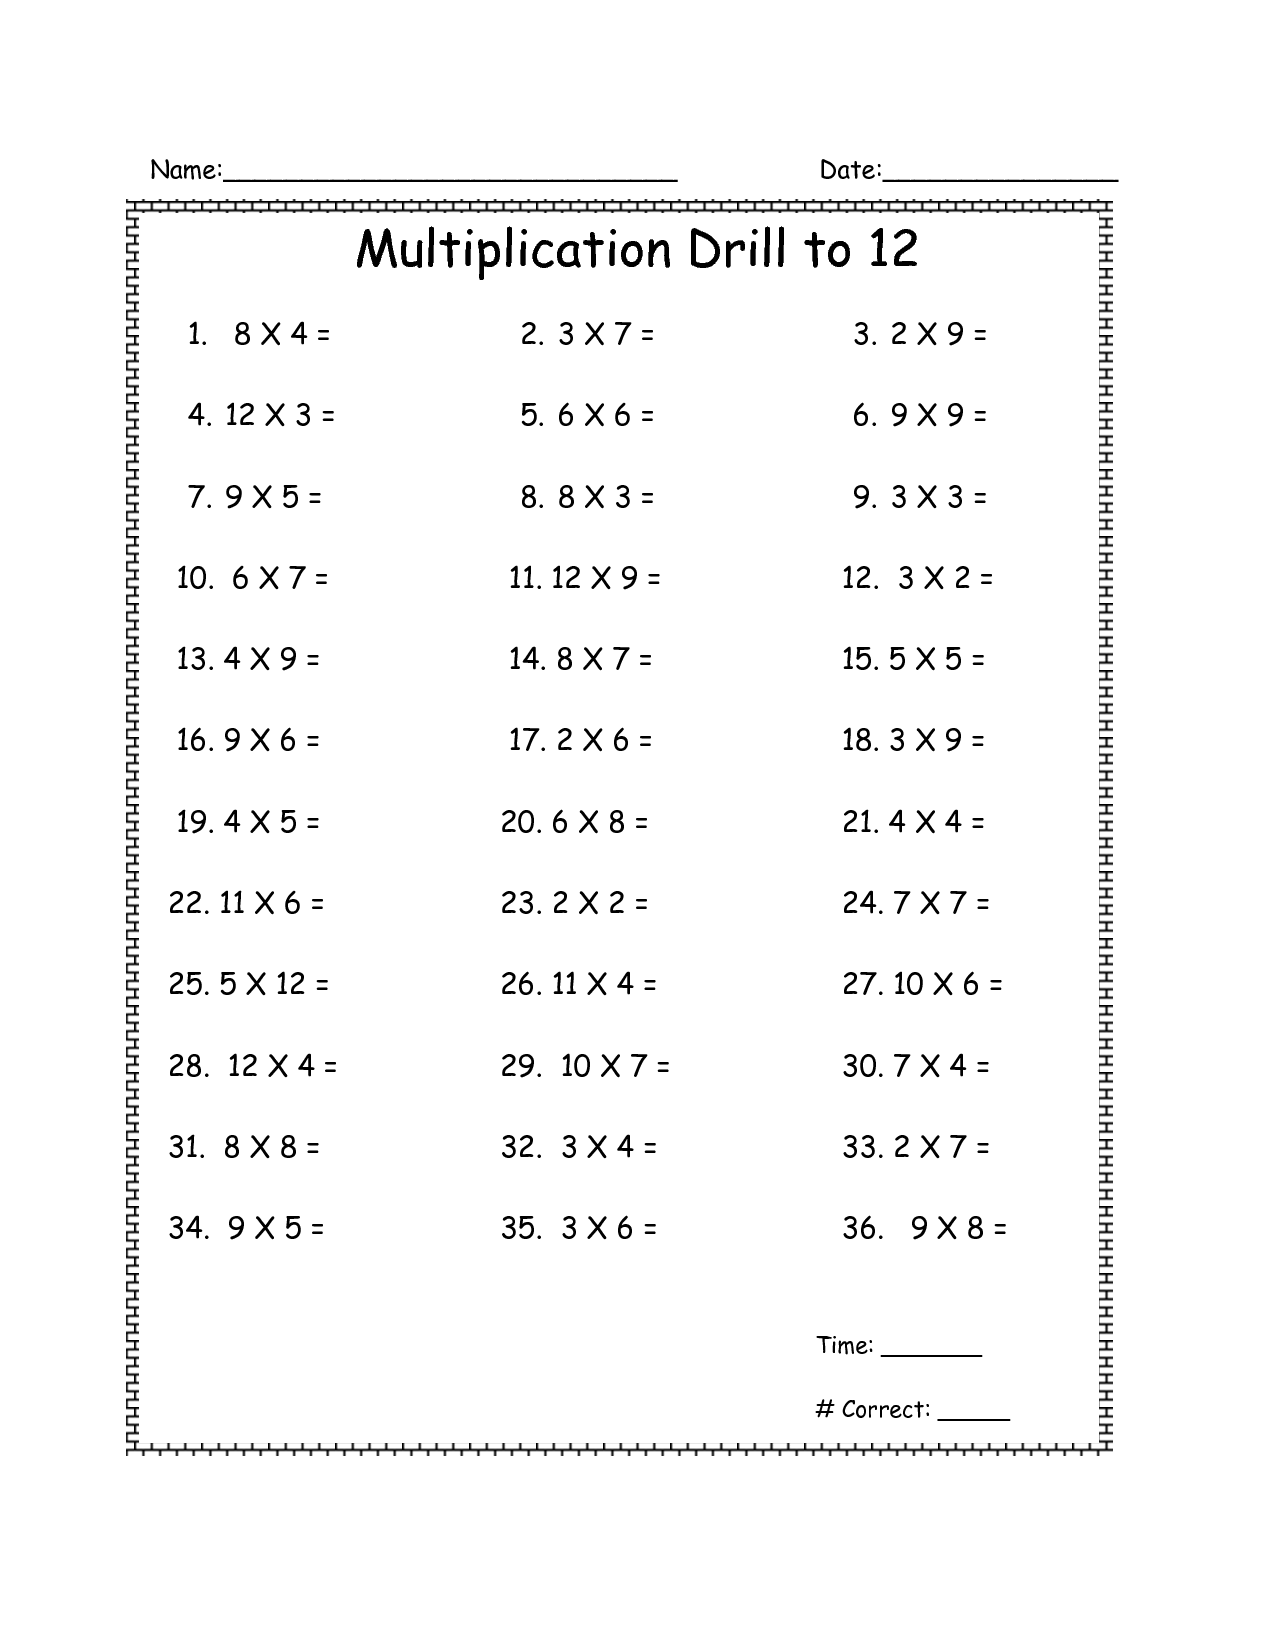 15 Best Images Of Multiplication Drill Worksheets